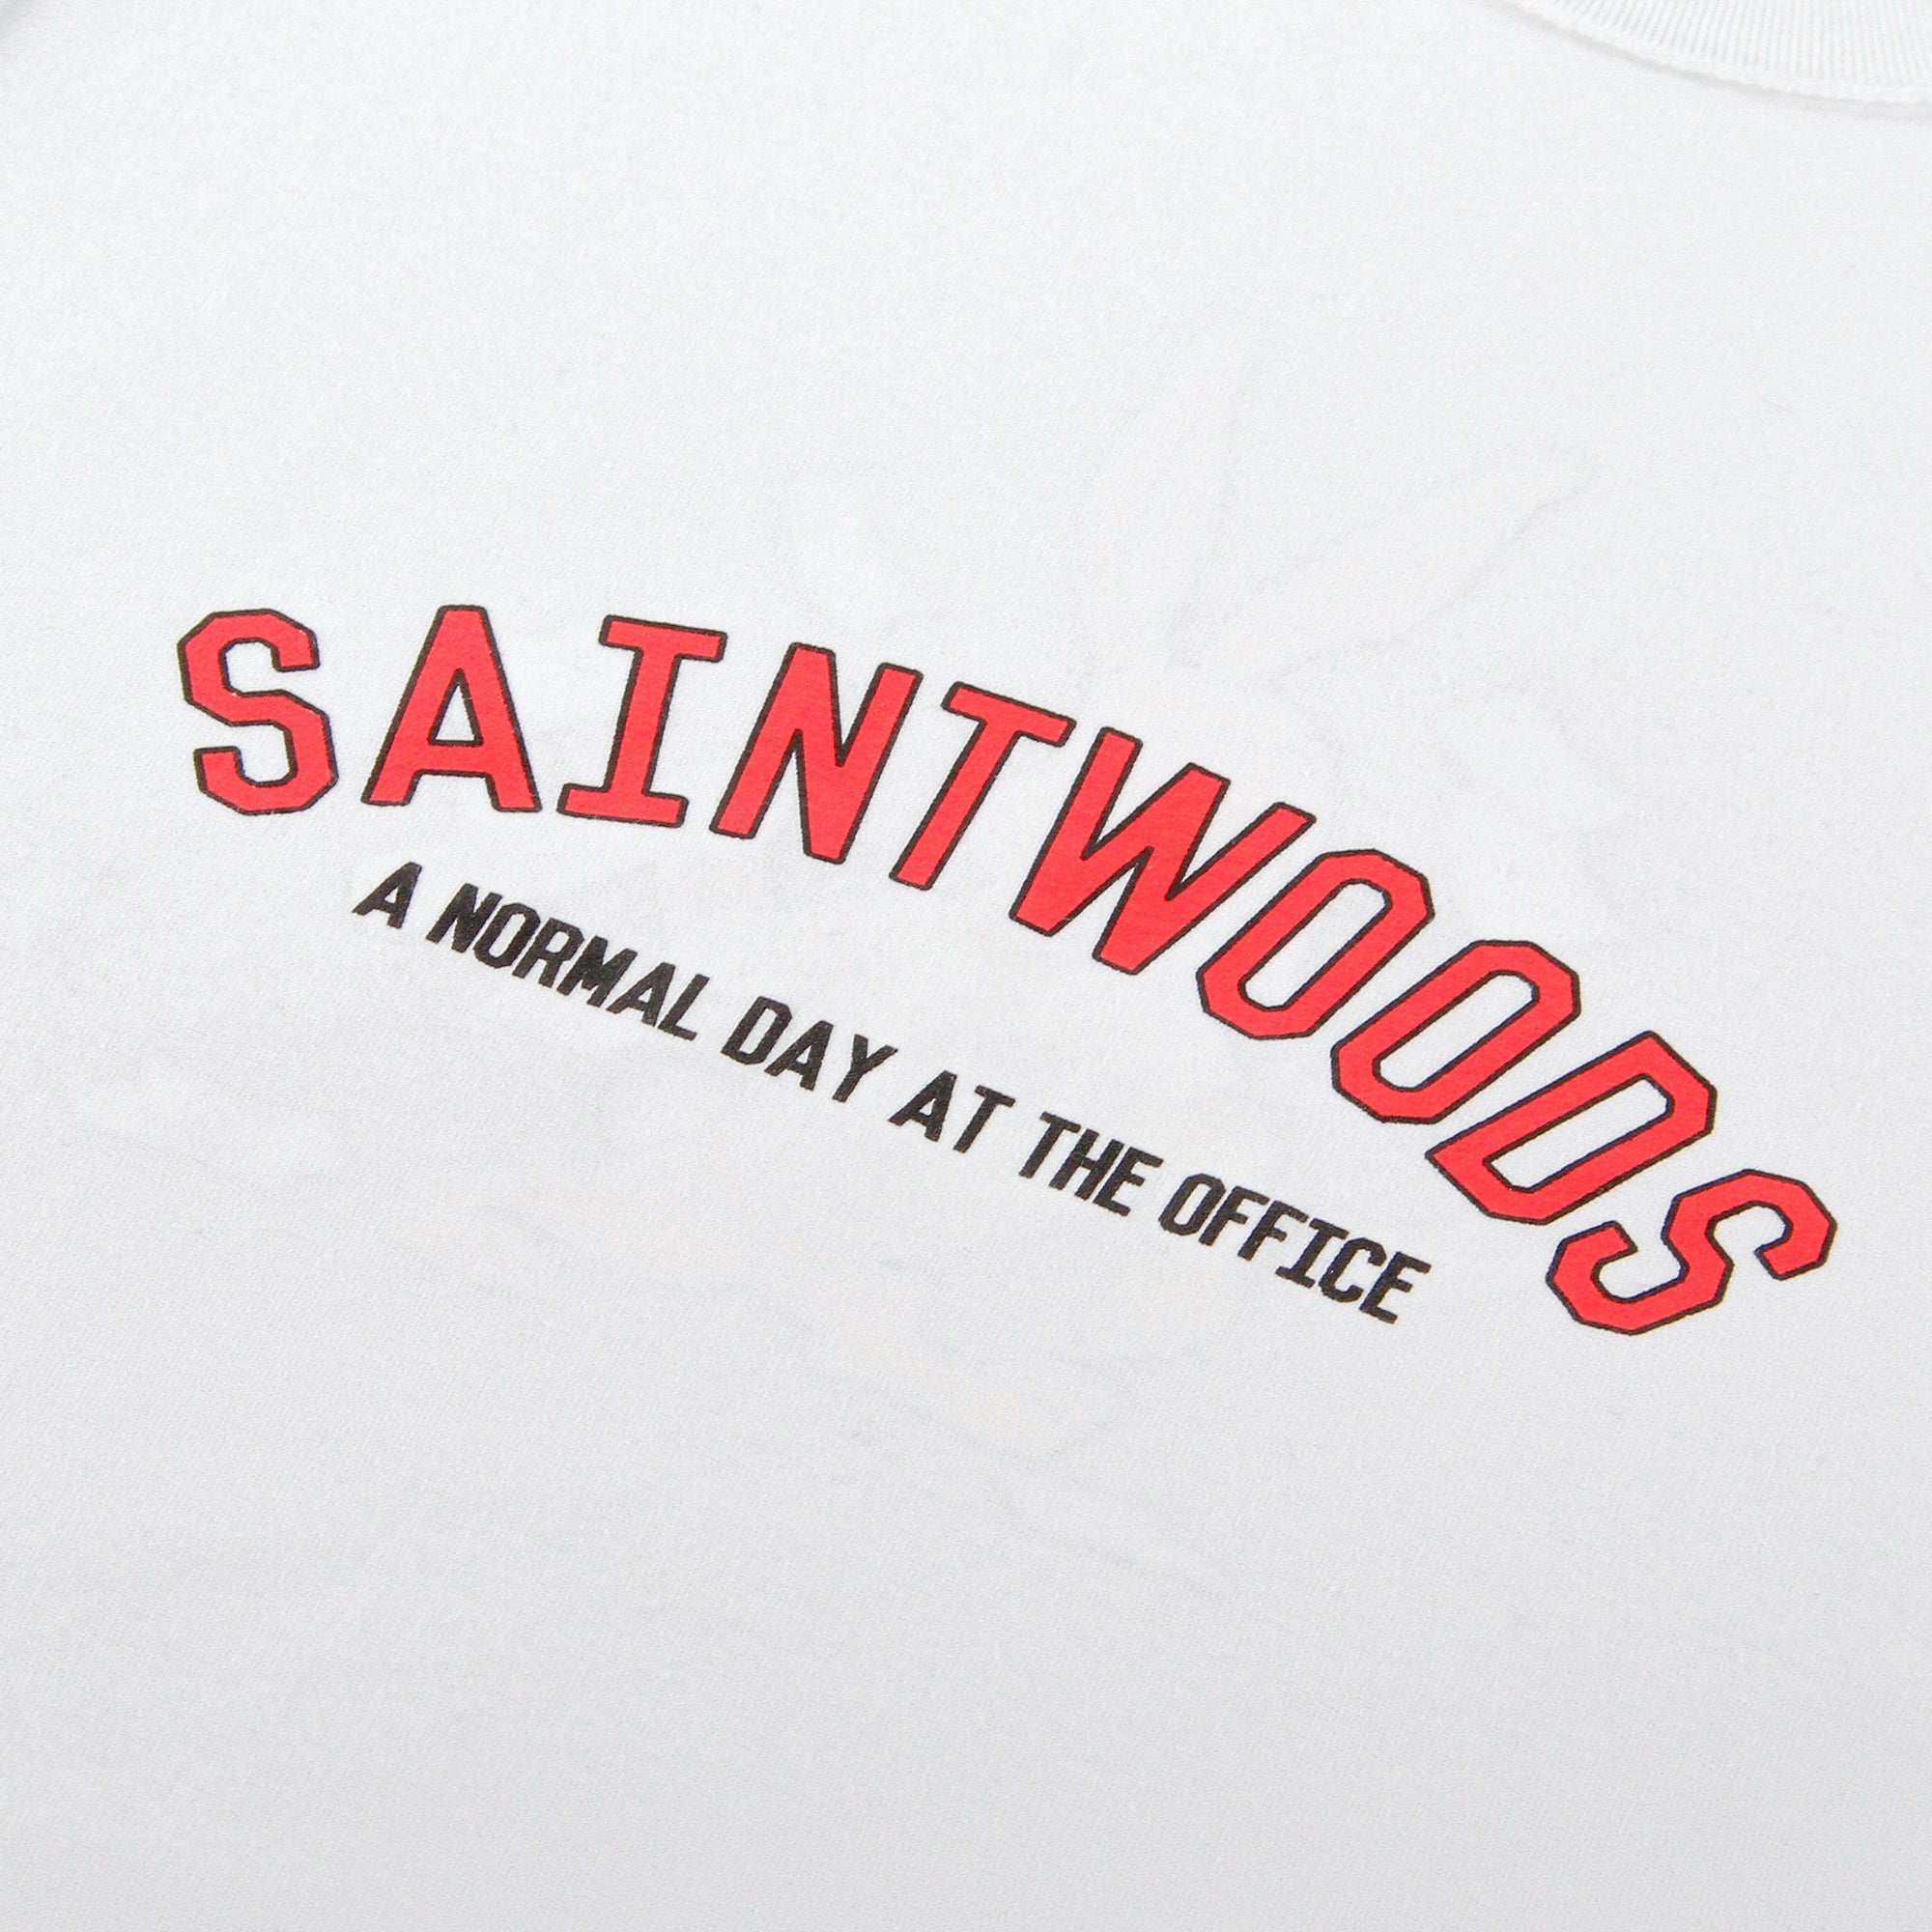 Normal Day Reversible Tee - T-Shirts - Saintwoods